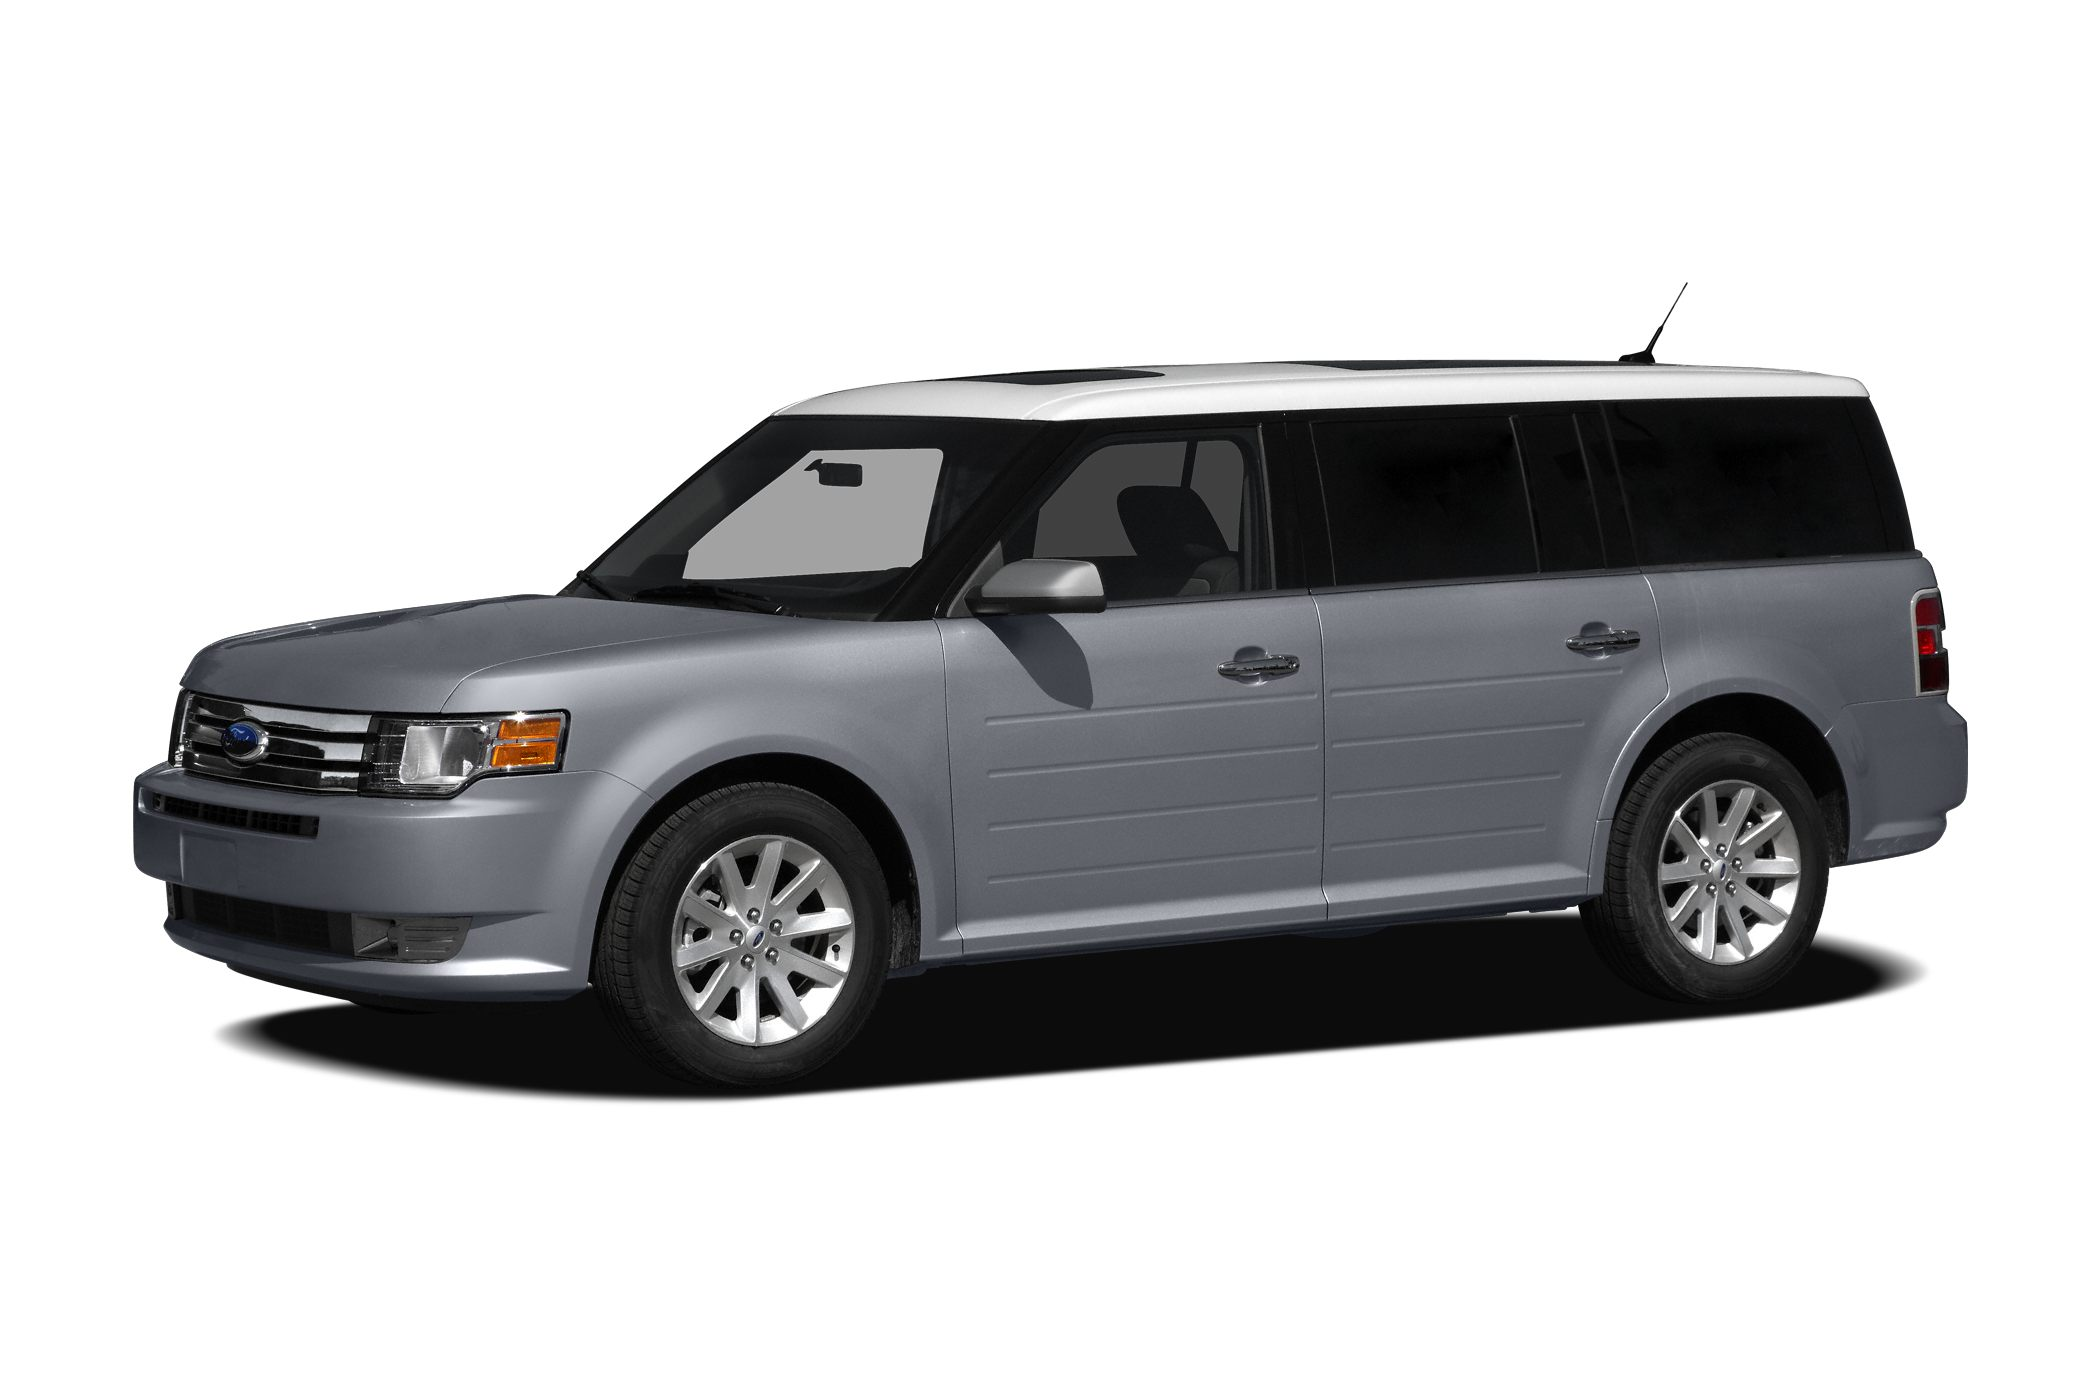 2011 Ford Flex SEL SUV for sale in Topeka for $17,999 with 82,543 miles